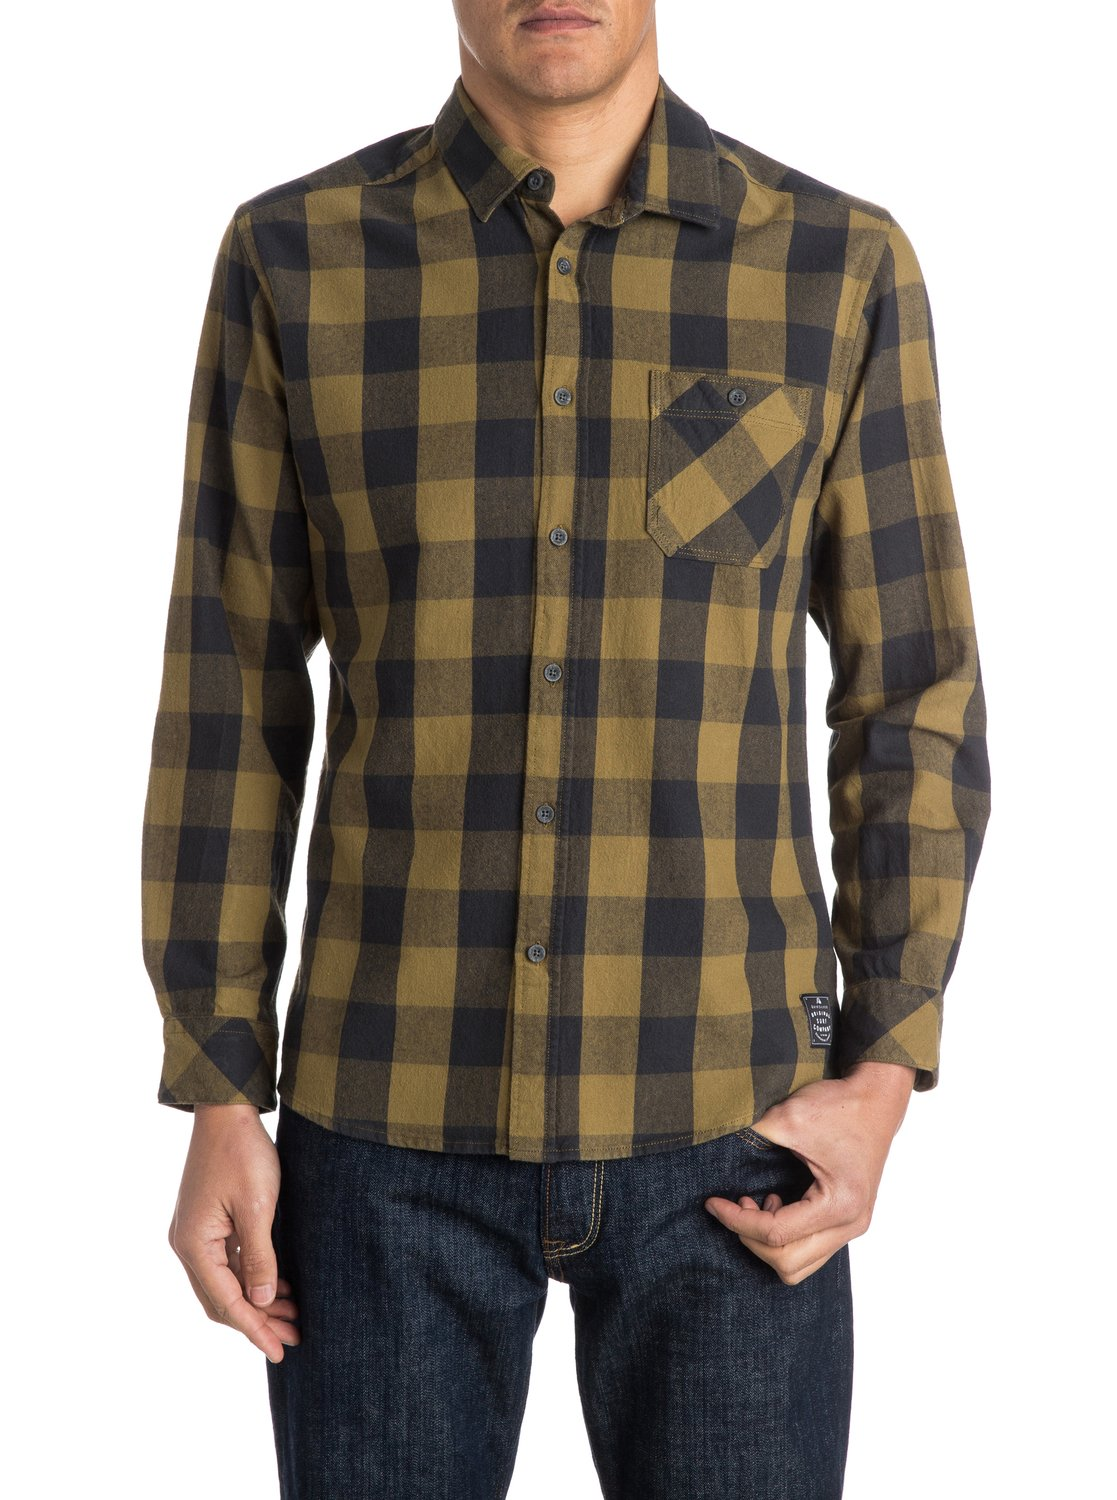 Find great deals on eBay for flannel long sleeve shirts. Shop with confidence.